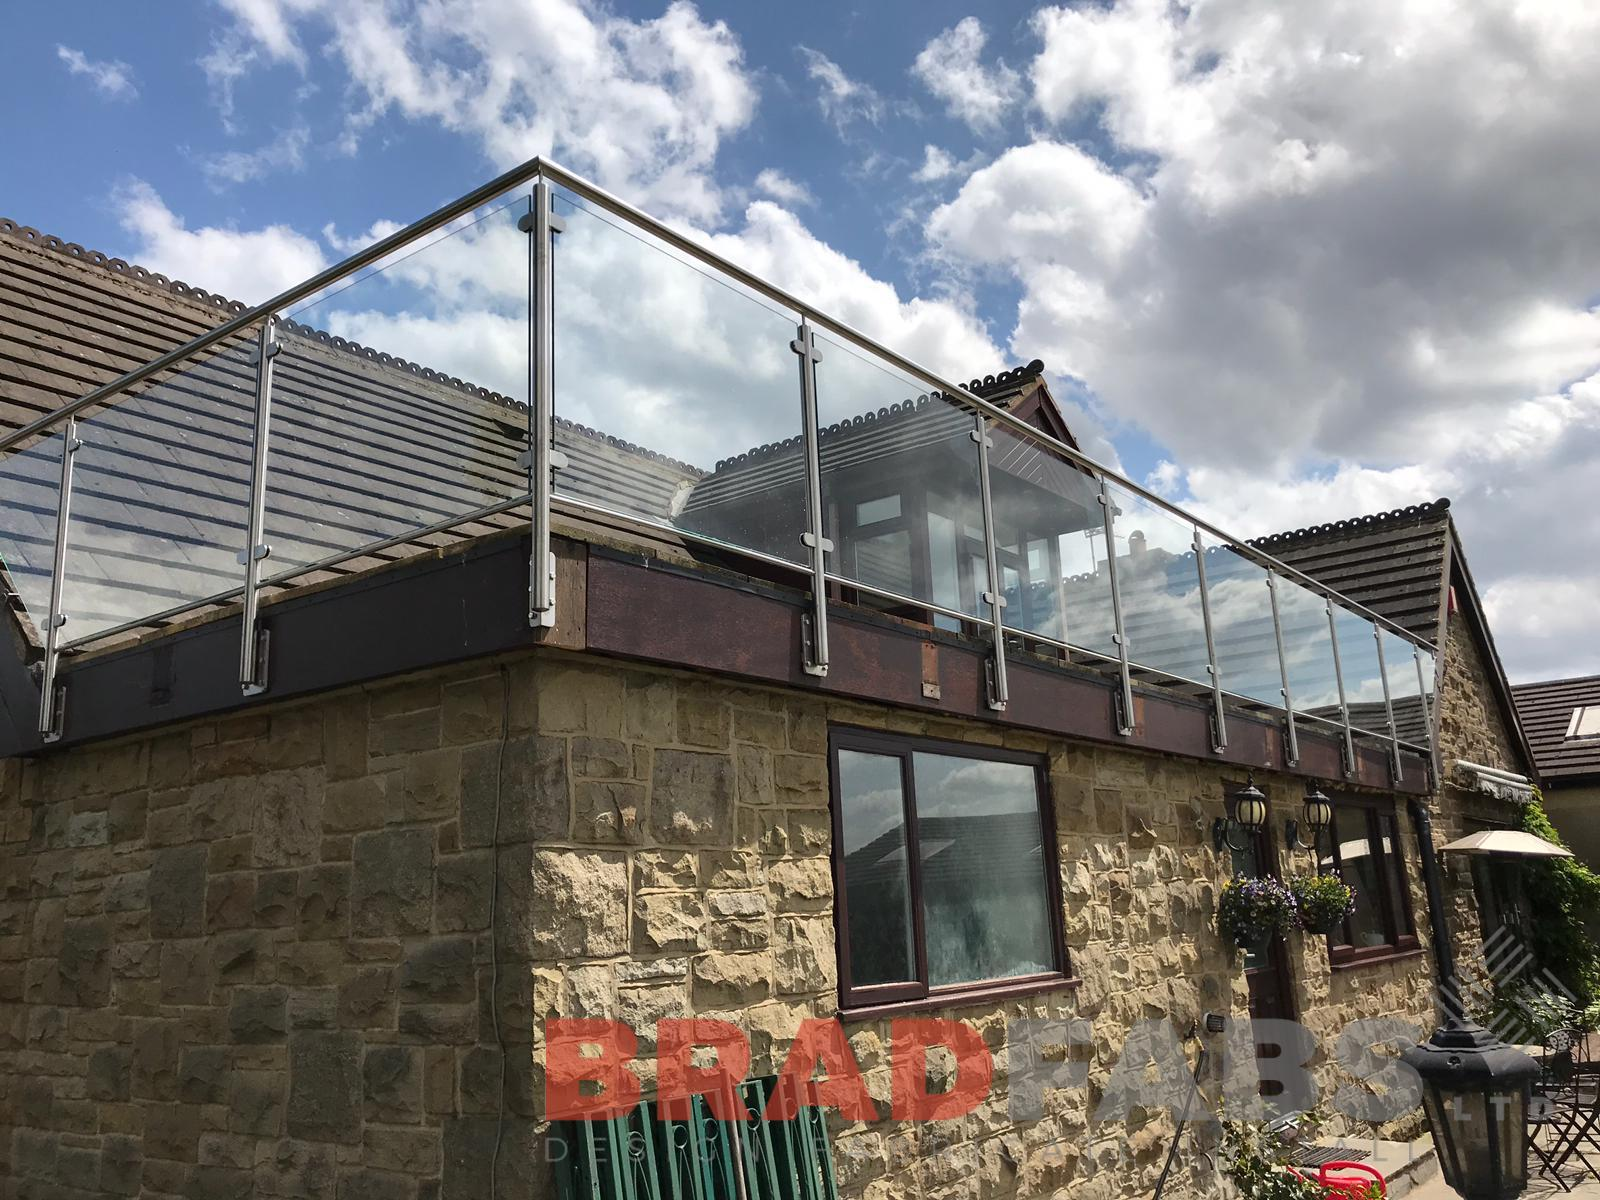 Bespoke balustrade added to customers existing roof, safety glass with stainless steel top rail by bradfabs